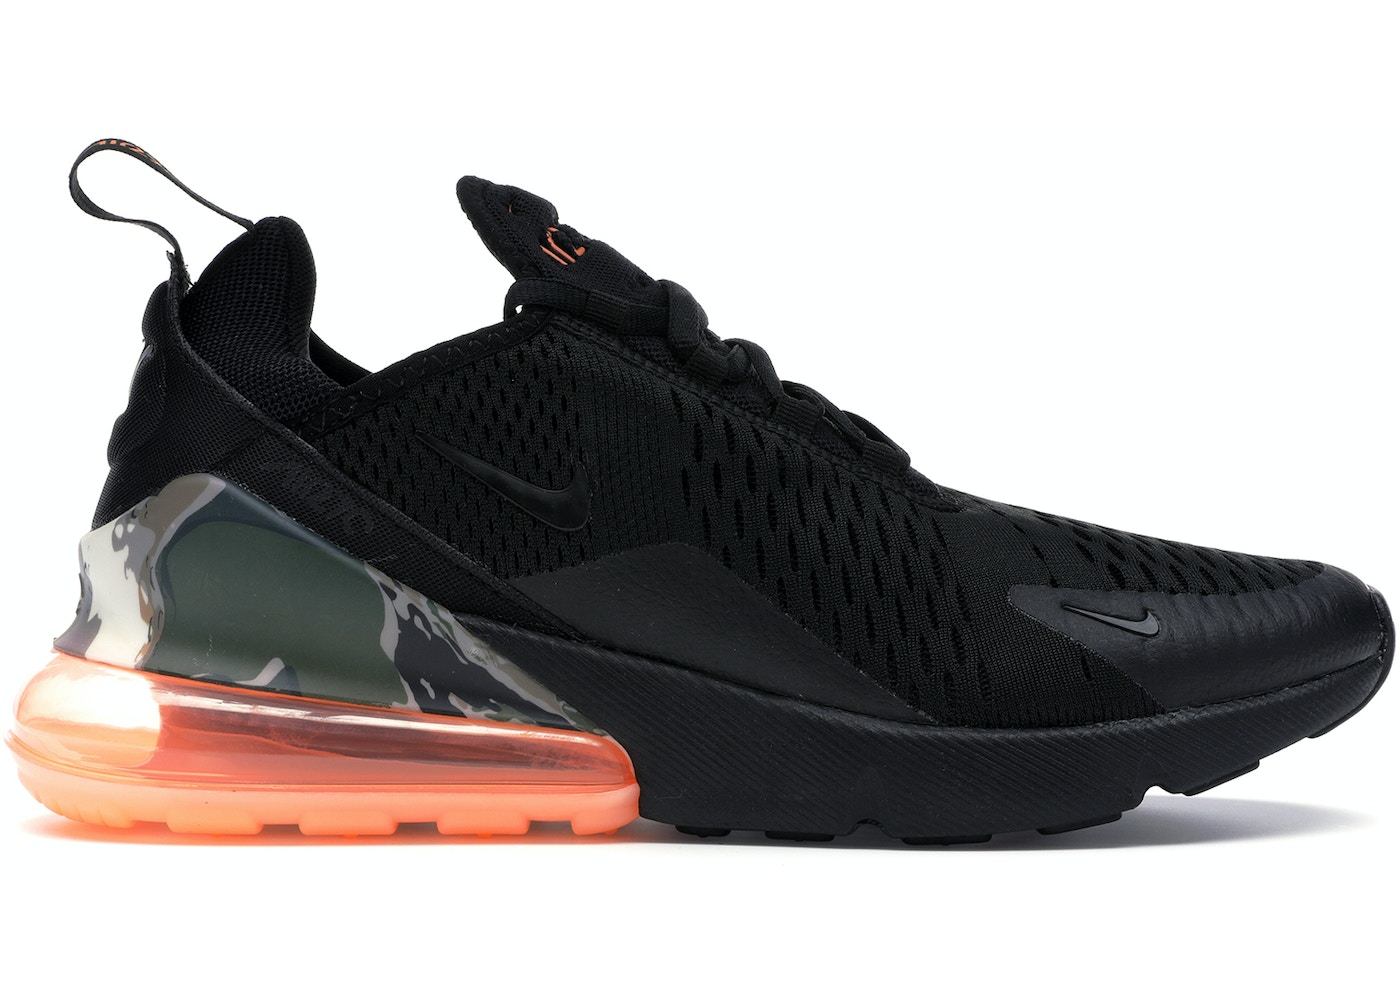 new style a1c2d 53965 Air Max 270 Camo Sunset